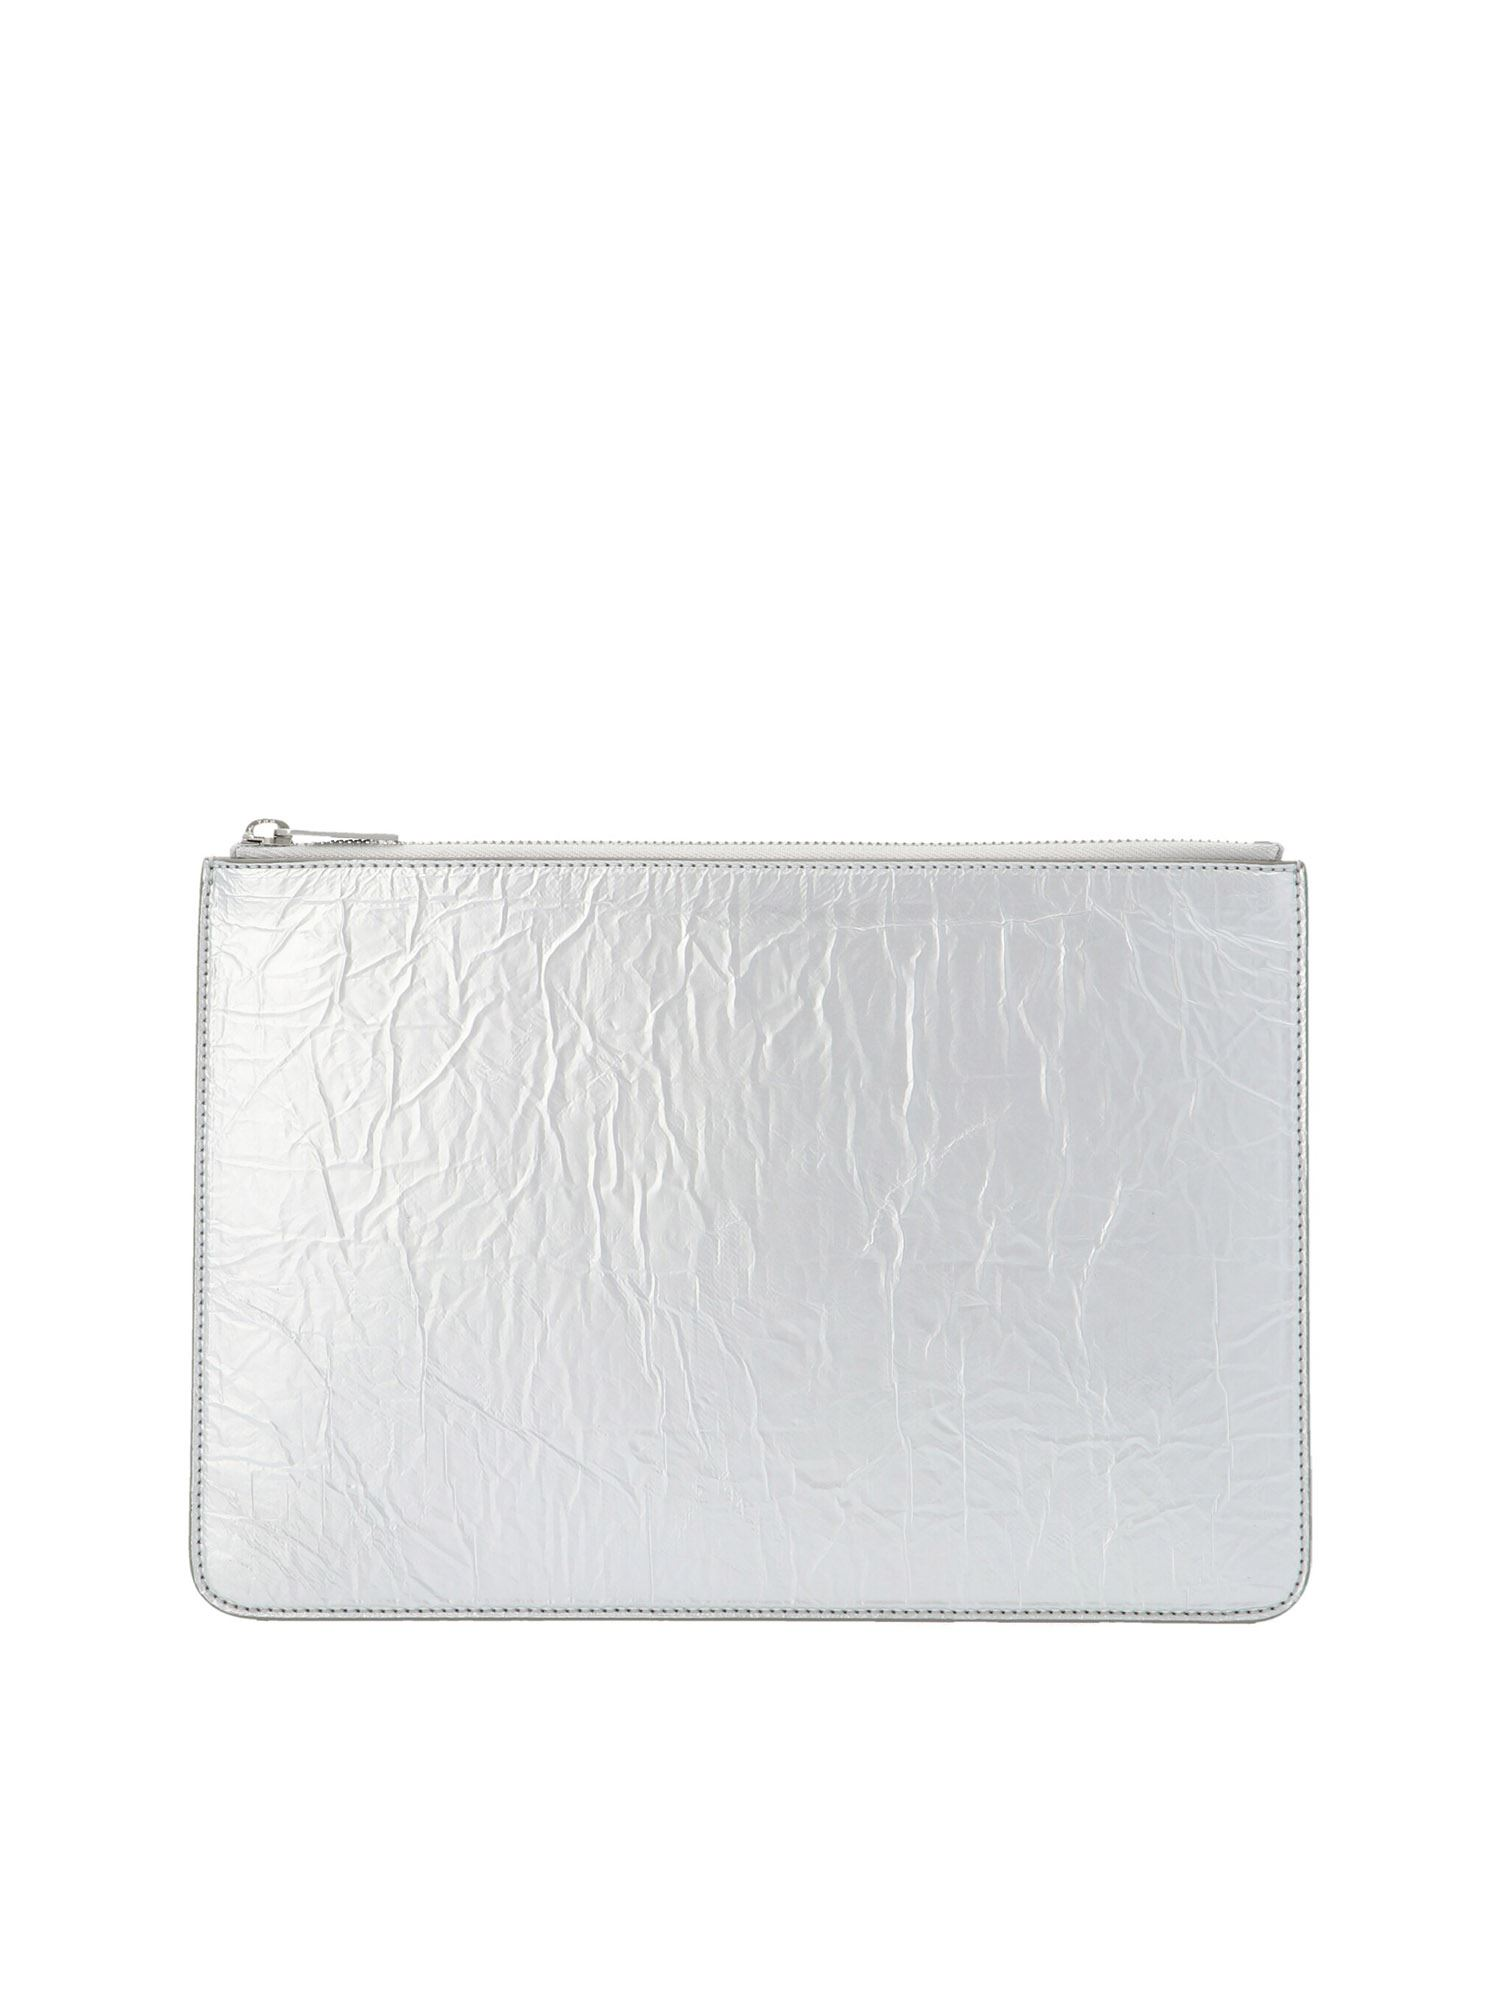 Maison Margiela Leathers 'STITCHING' CLUTCH IN SILVER COLOR